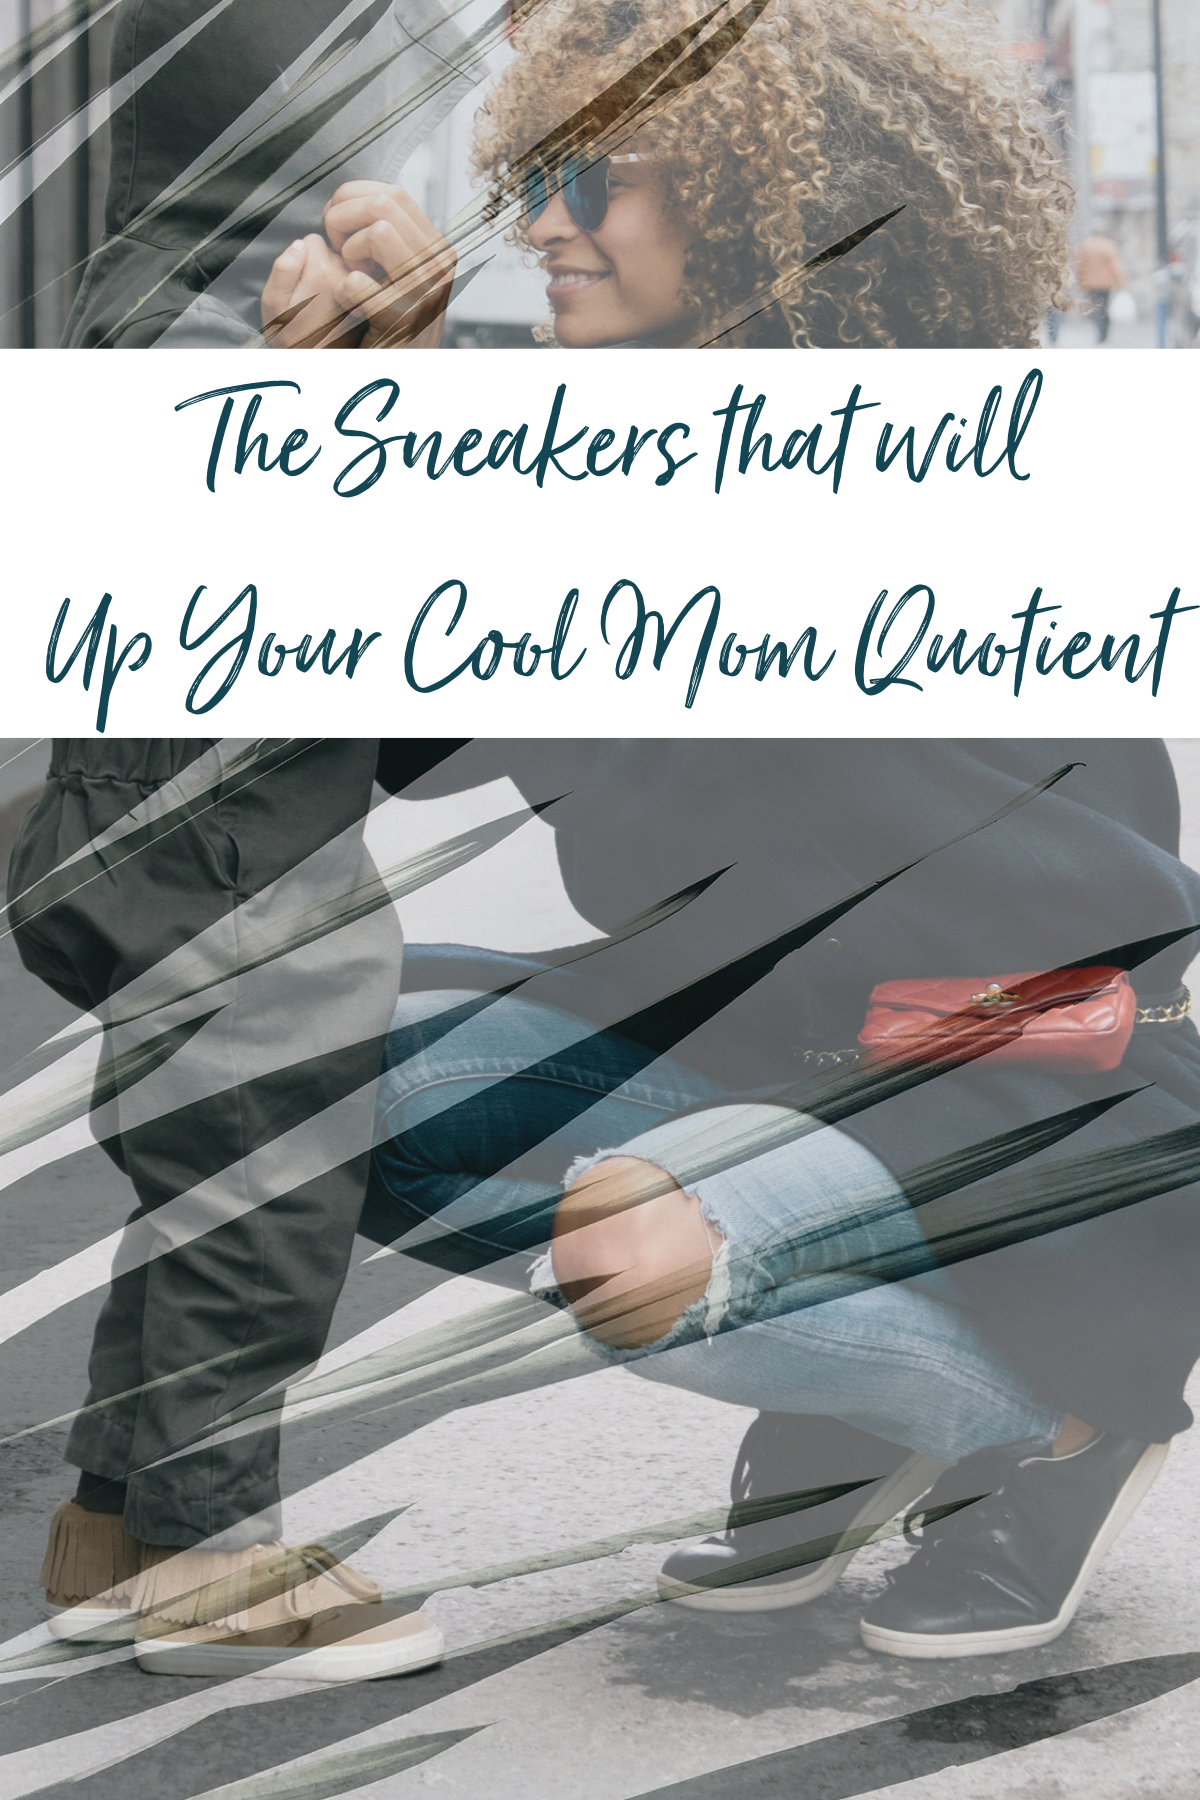 8 Sneakers That Will Up Your Cool Mom Quotient